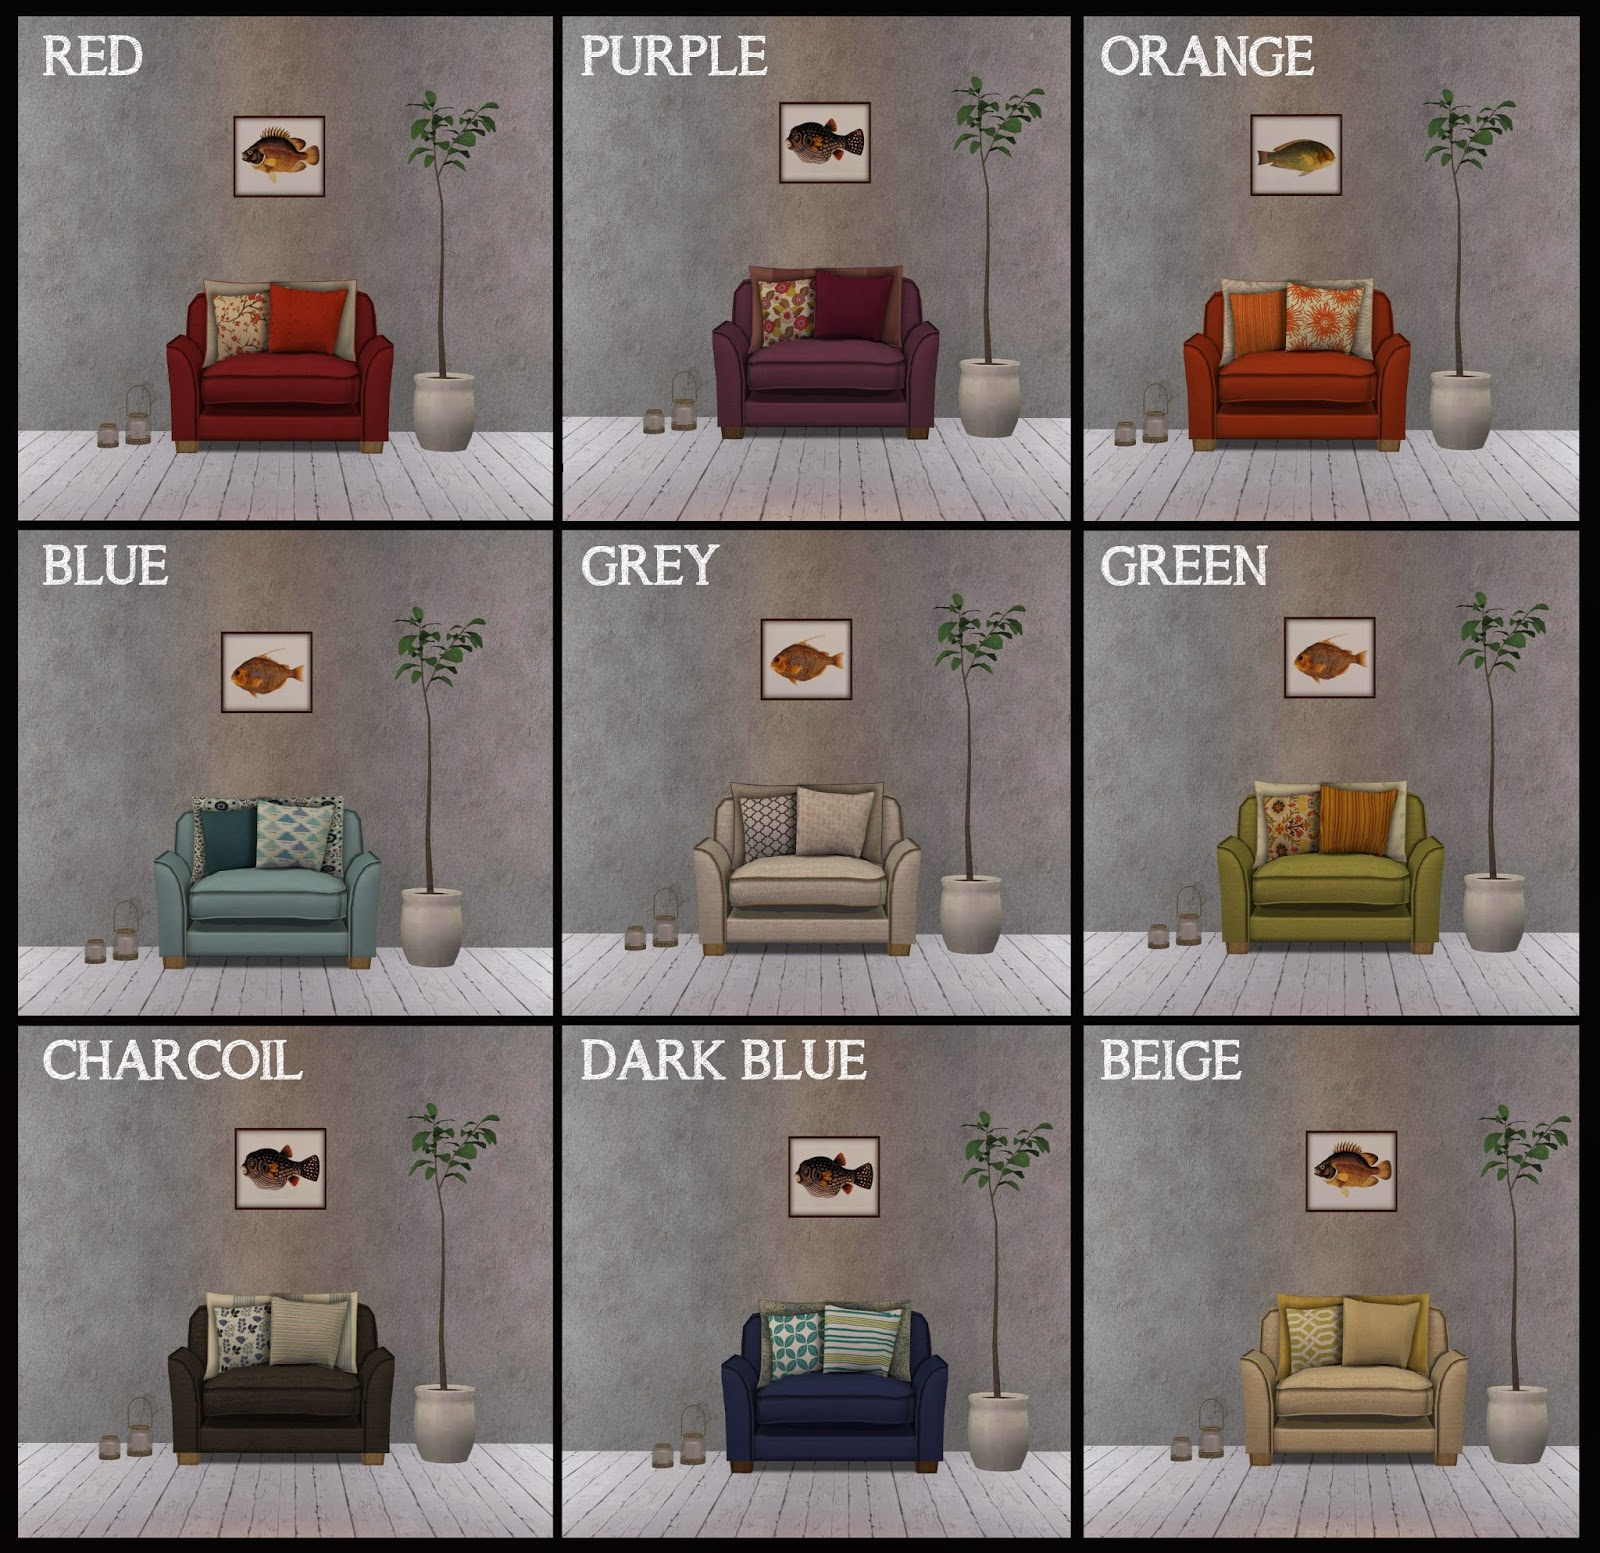 Marie's Sims: Sims in Paris Living room 7 Set Recolours